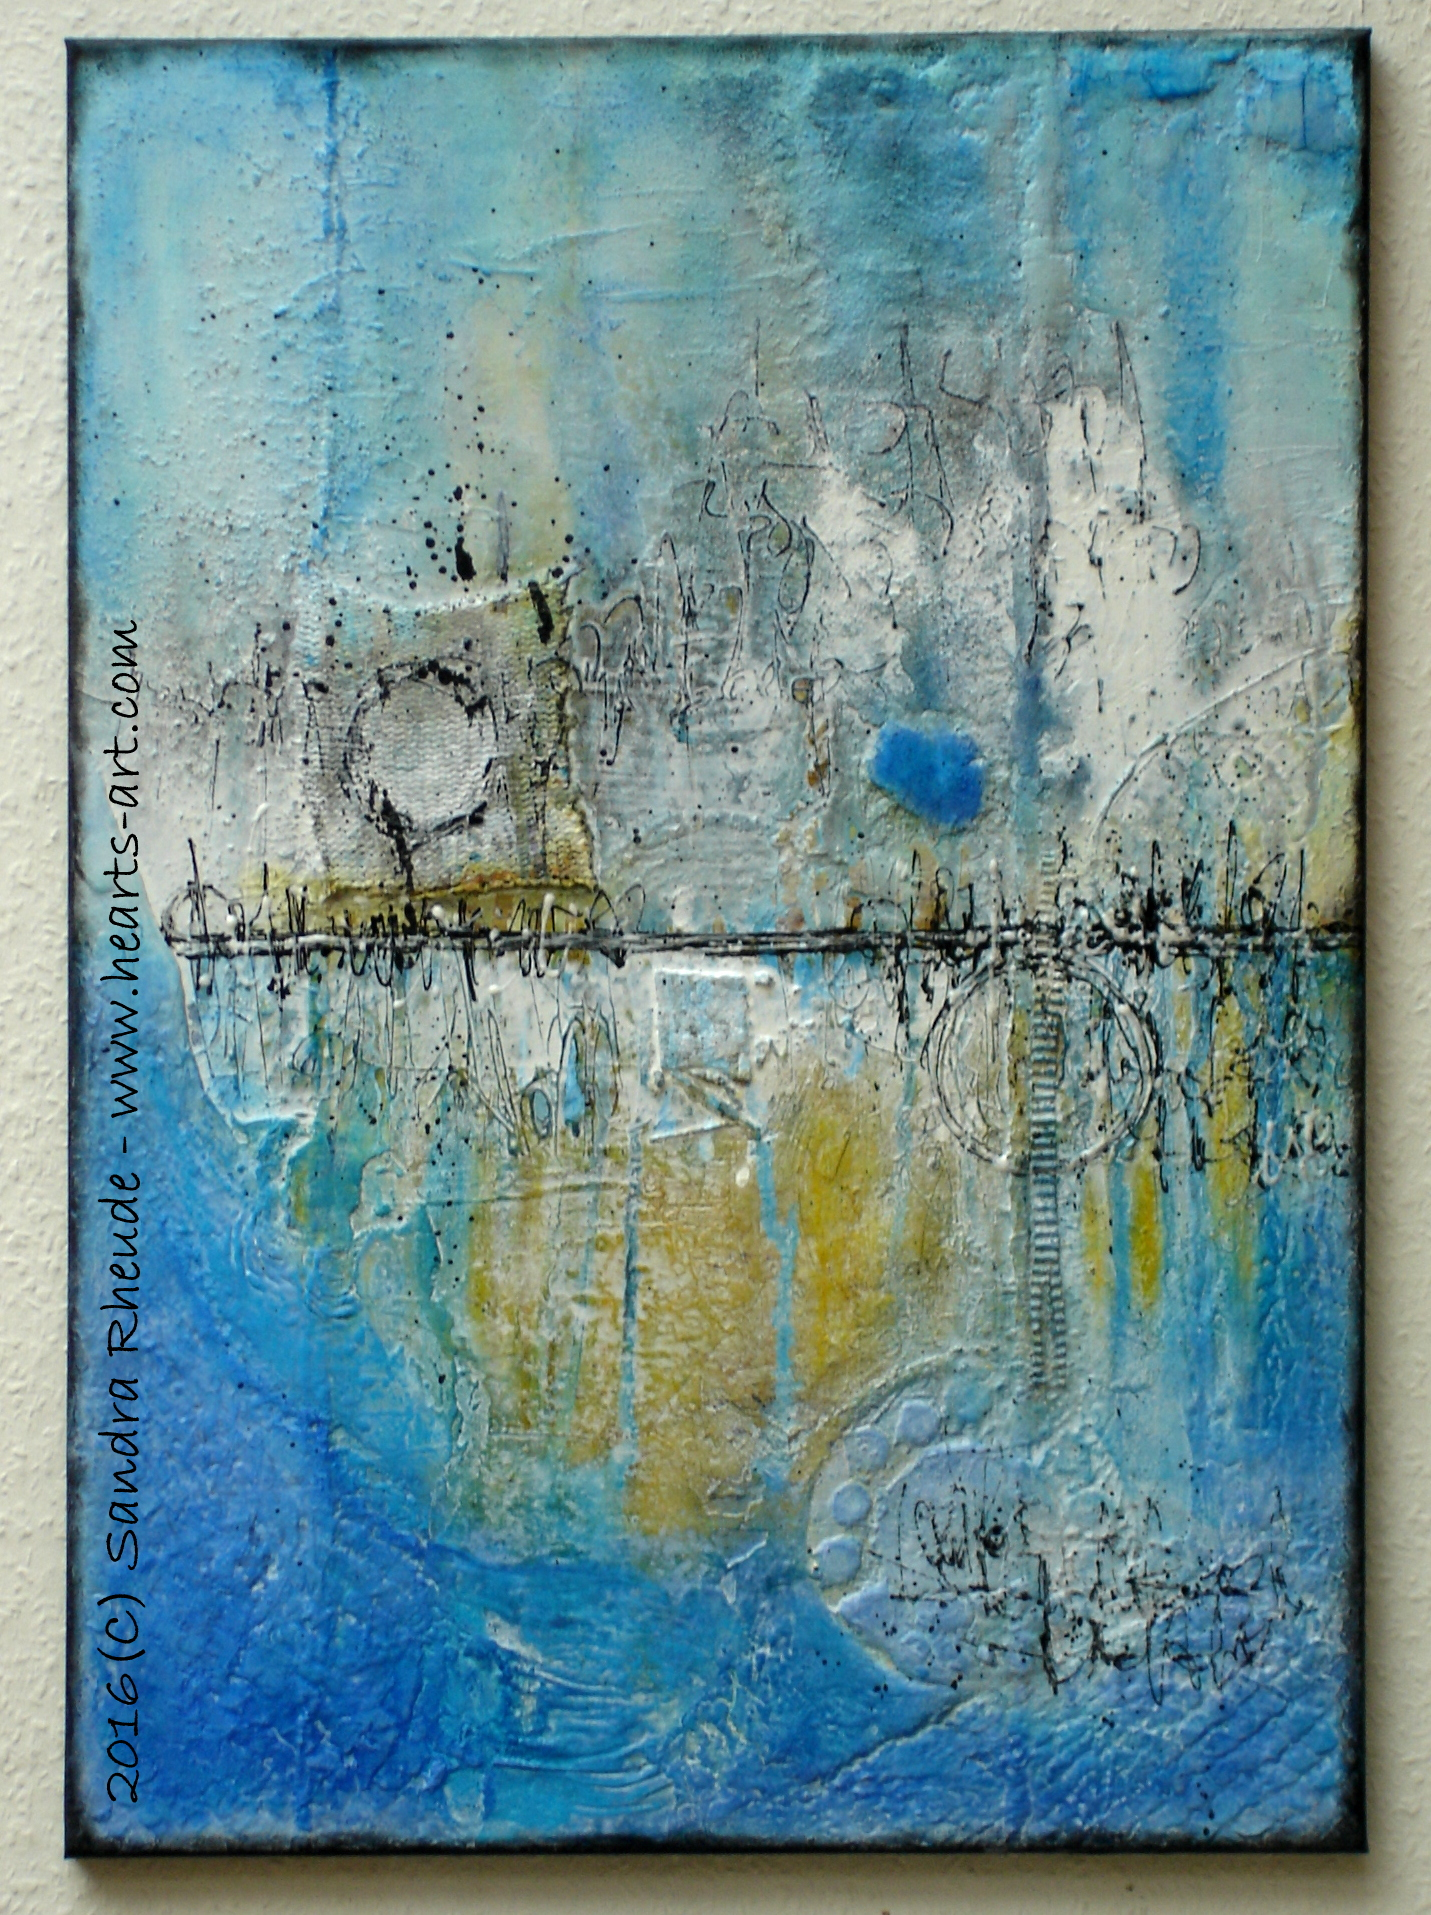 'Early Morning at the Beach' - 2016/34 - Acryl/MixedMedia auf Leinwand - 50 x 70 cm - € 290